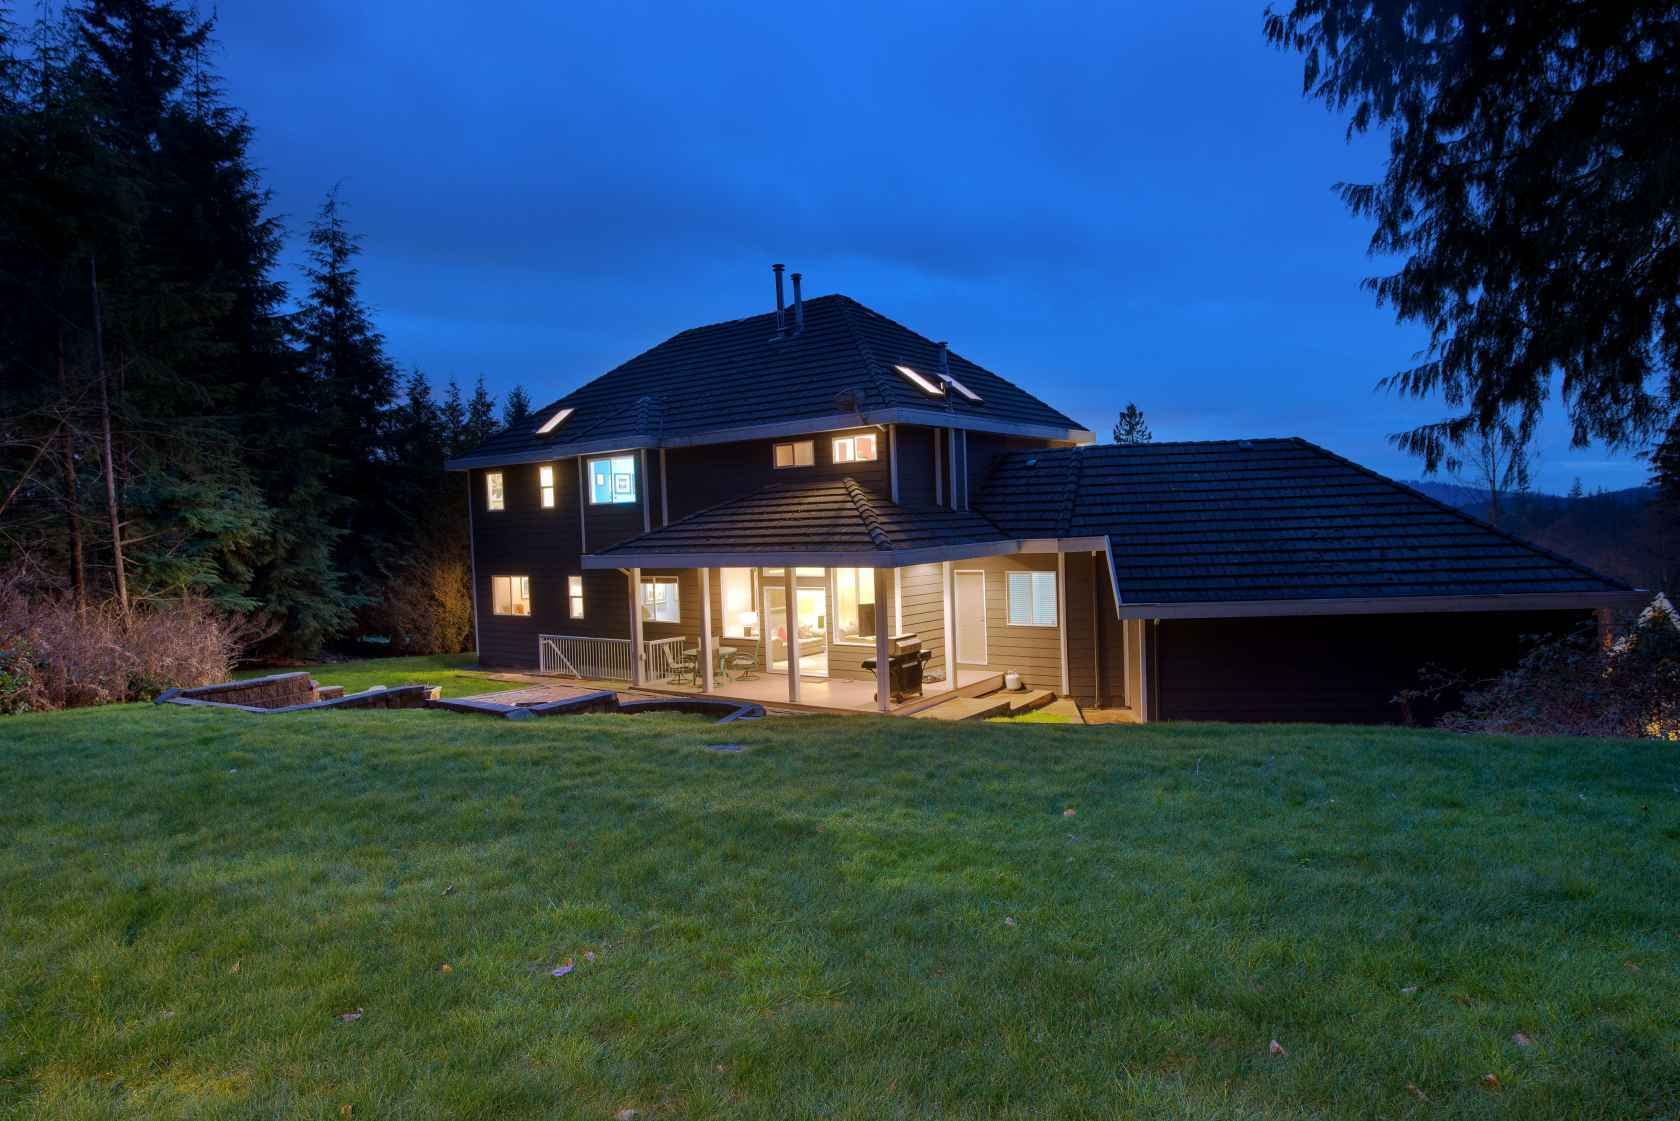 024 at 127 Hemlock Drive, Vancouver West